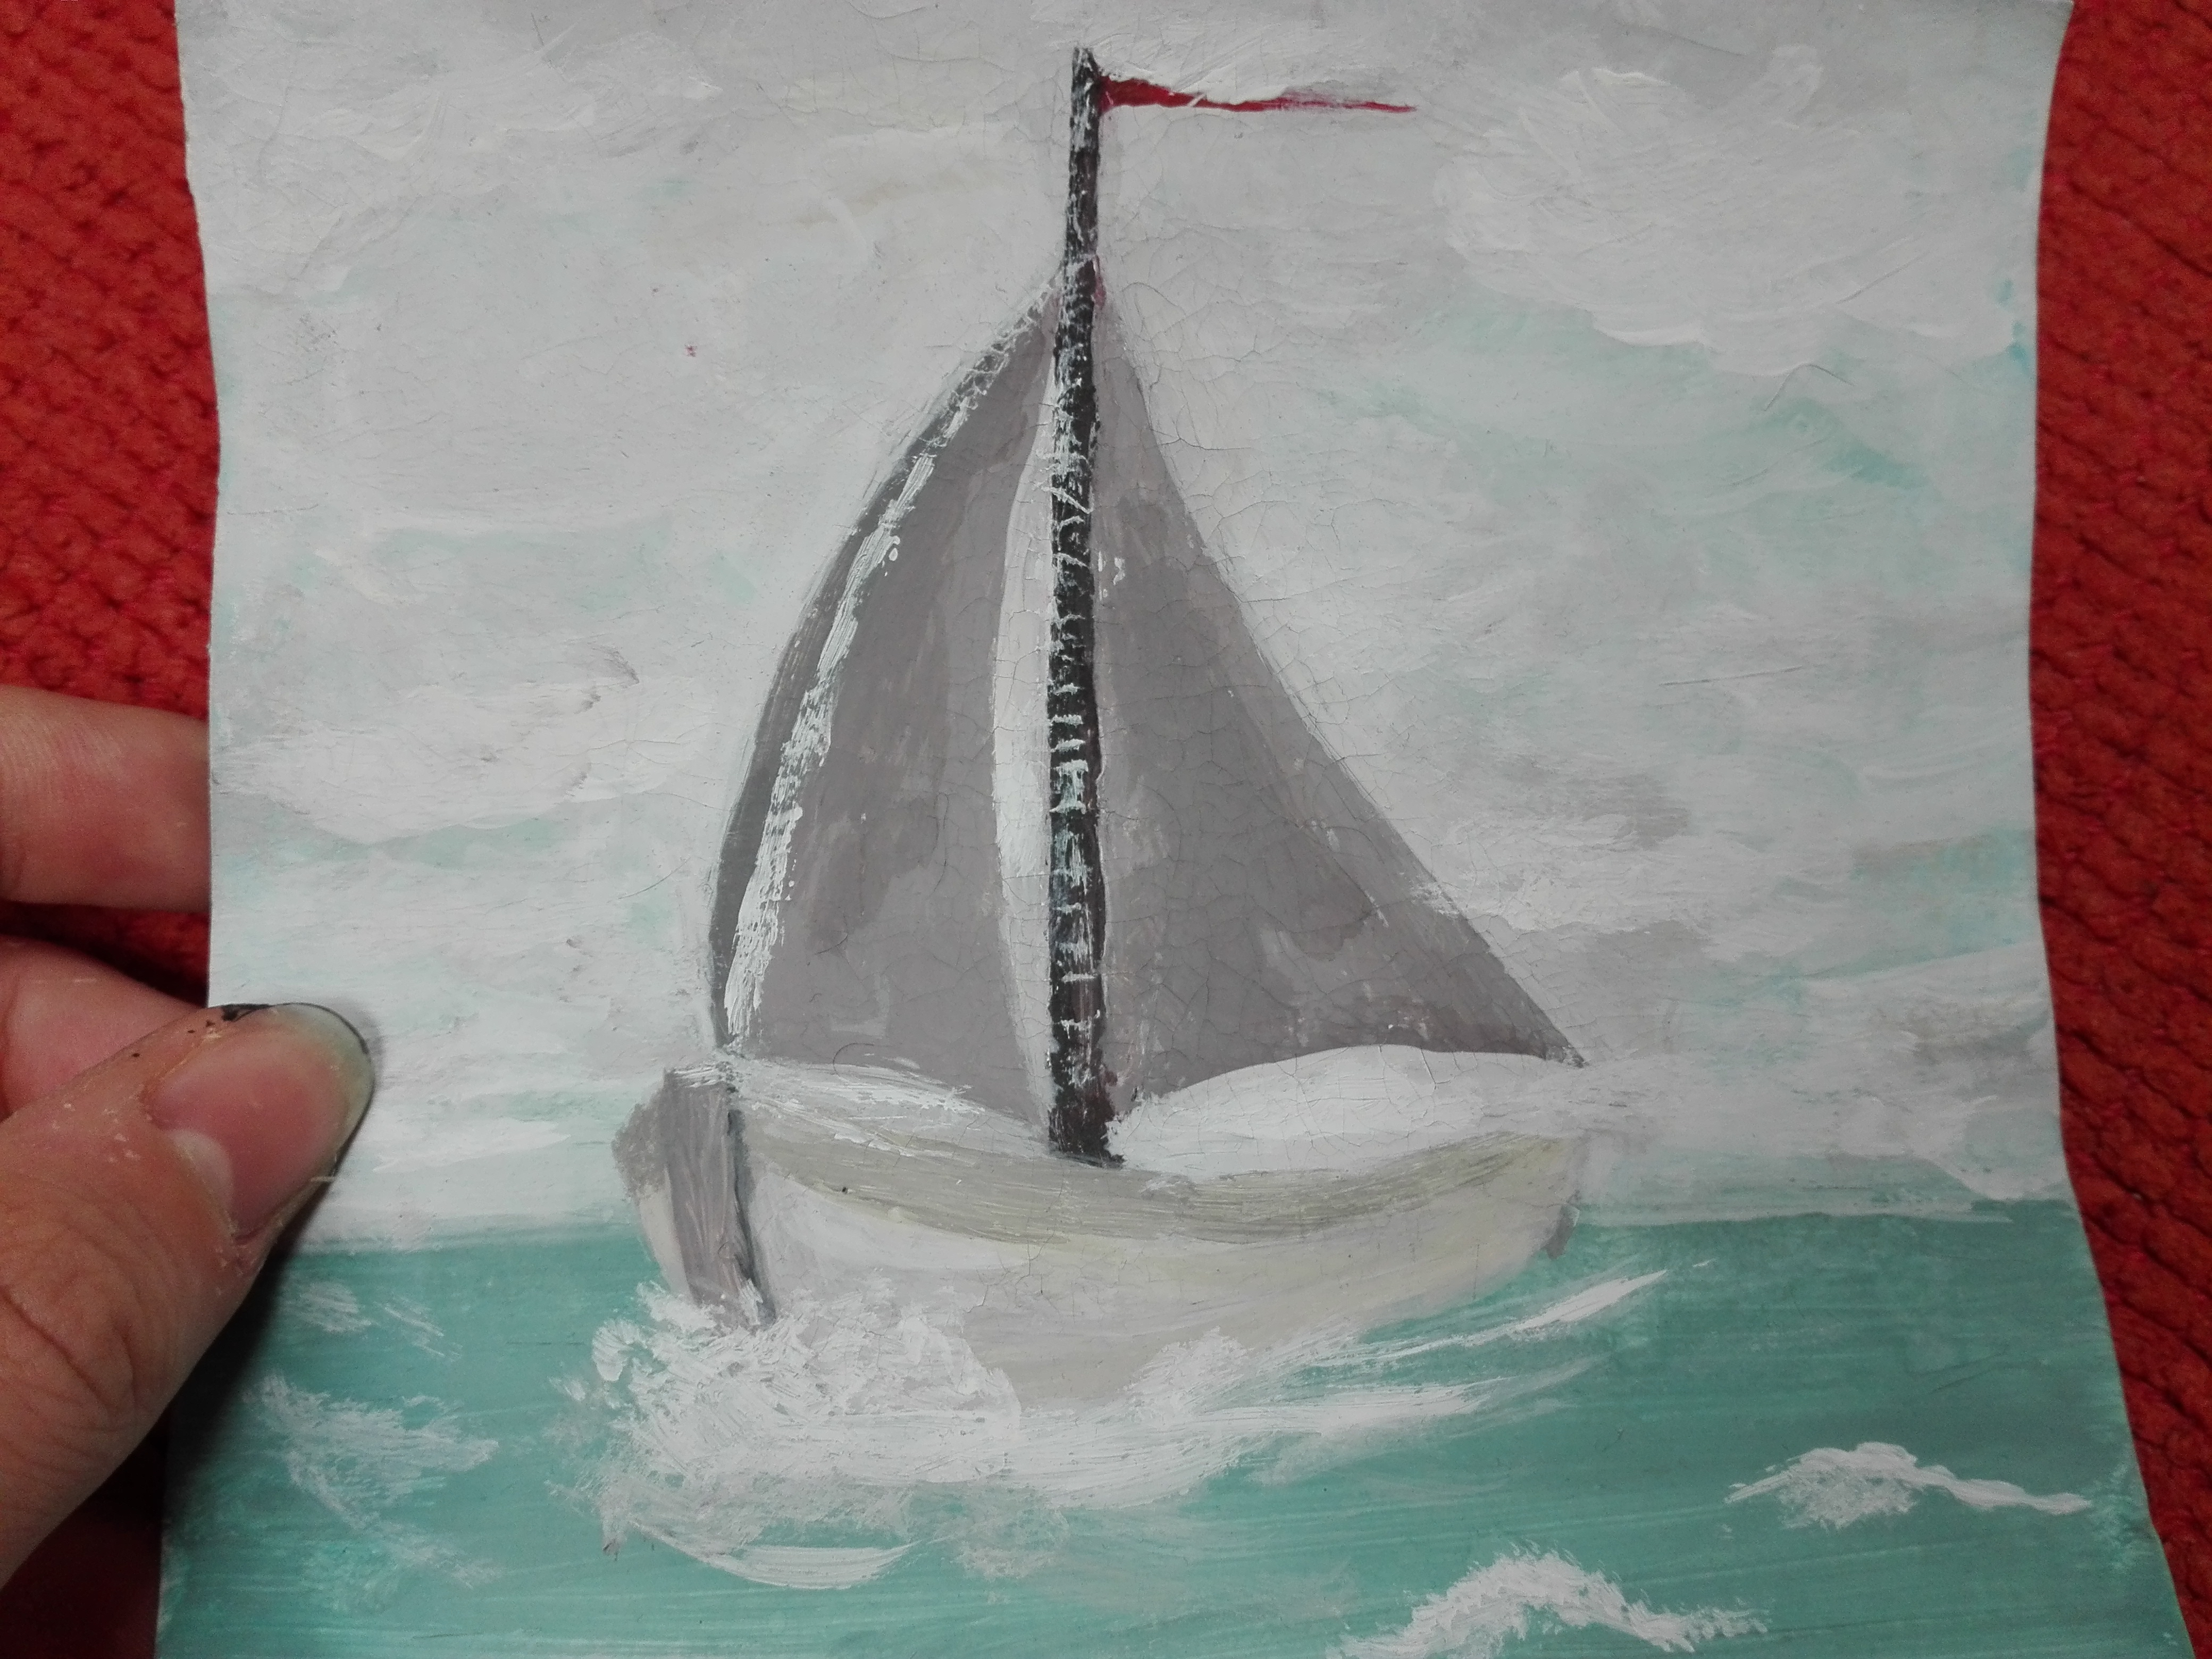 Sailing on a cloudy day